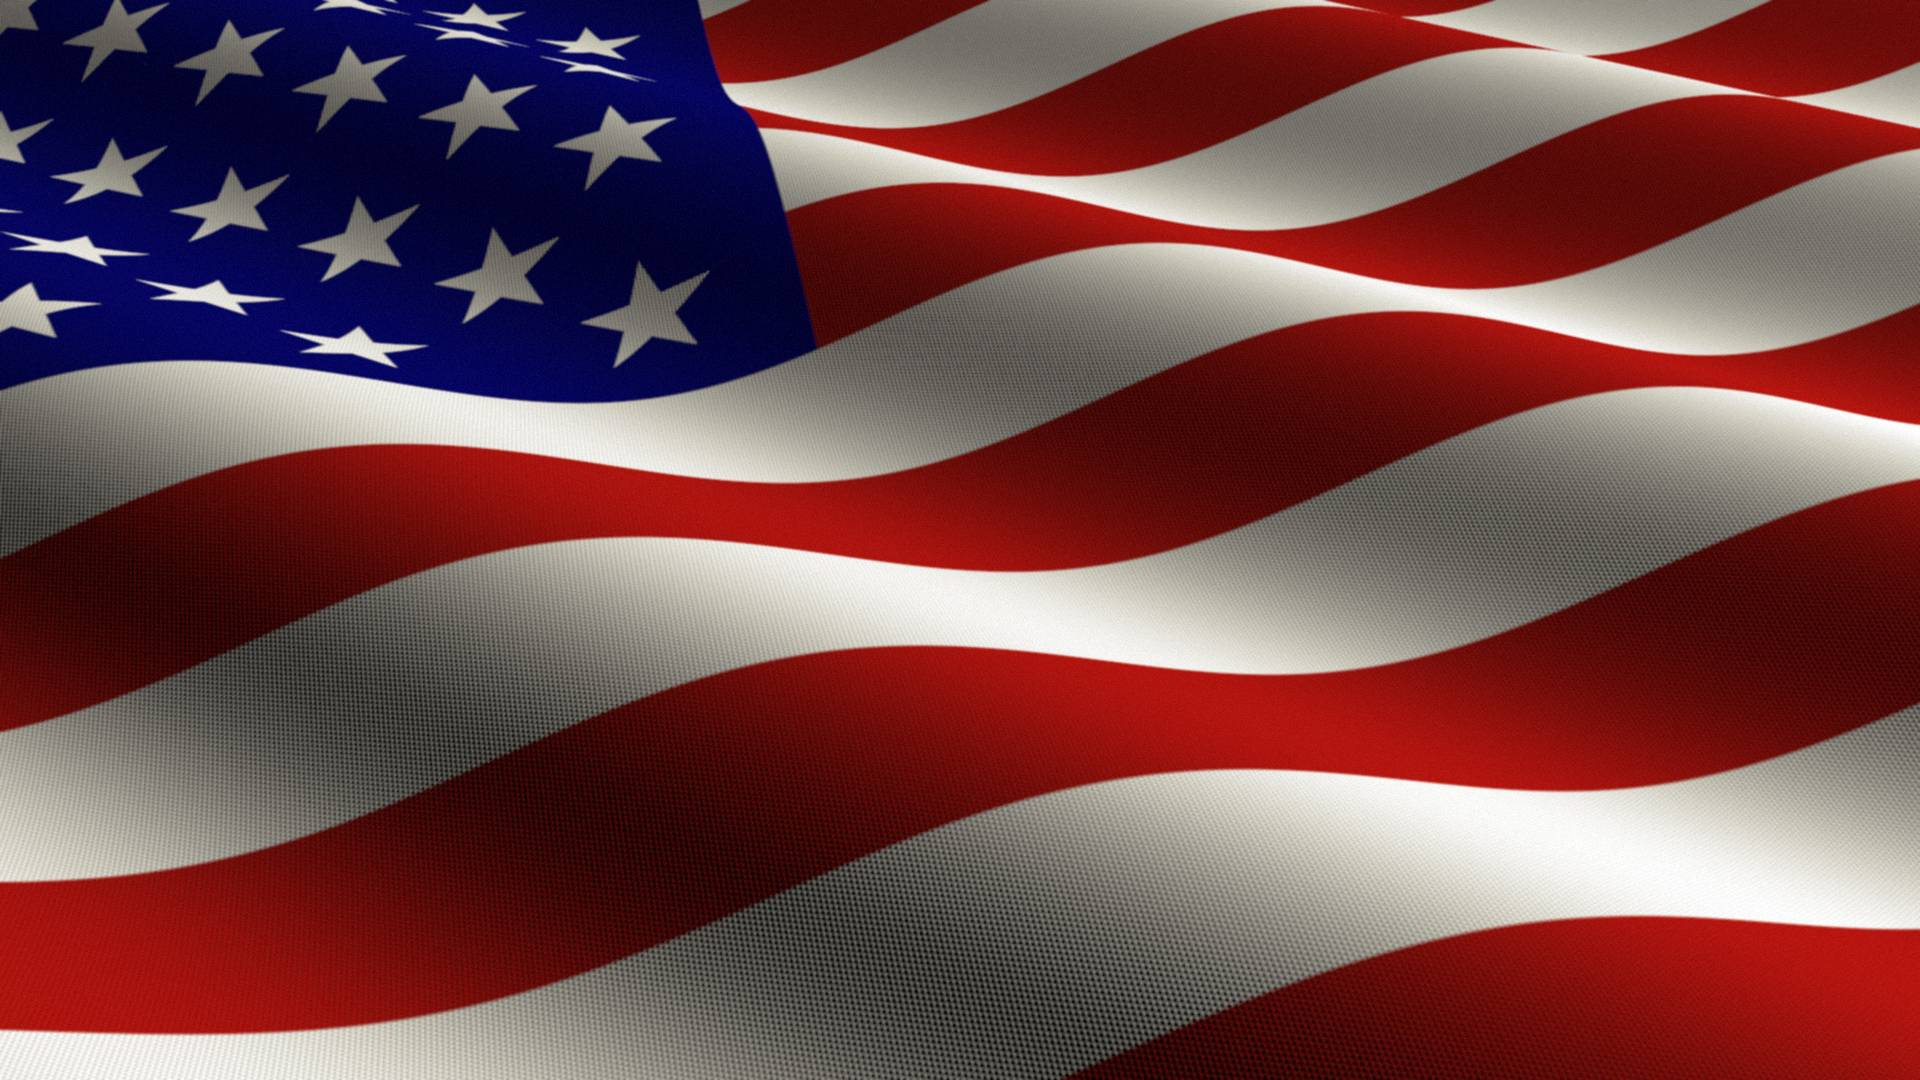 American Flag Desktop Wallpapers Wallpaper Cave